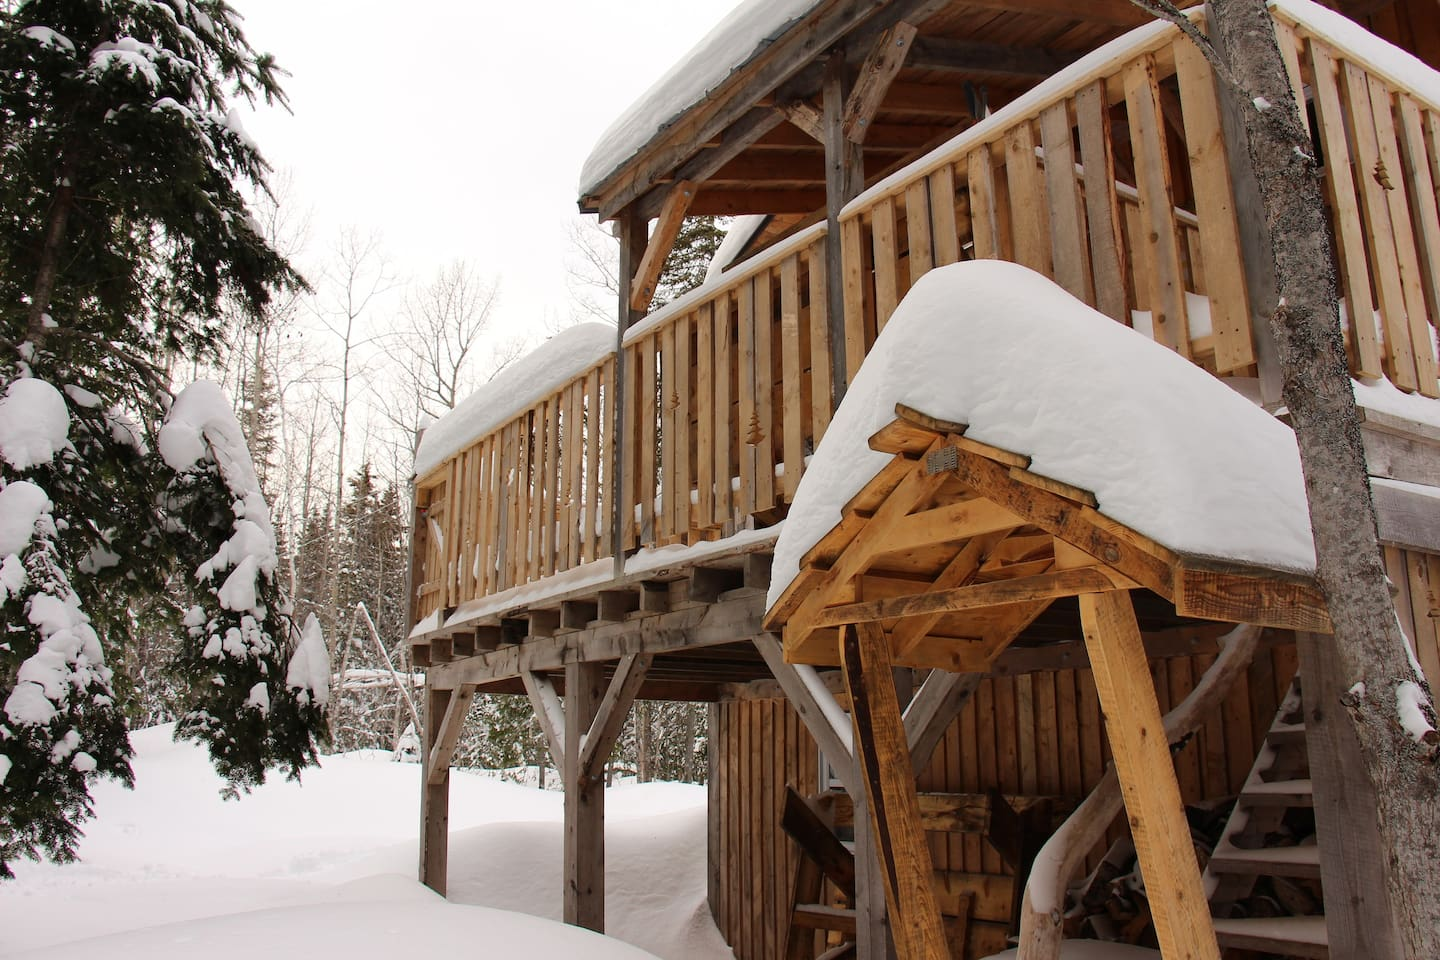 Our guesthouse in the winter